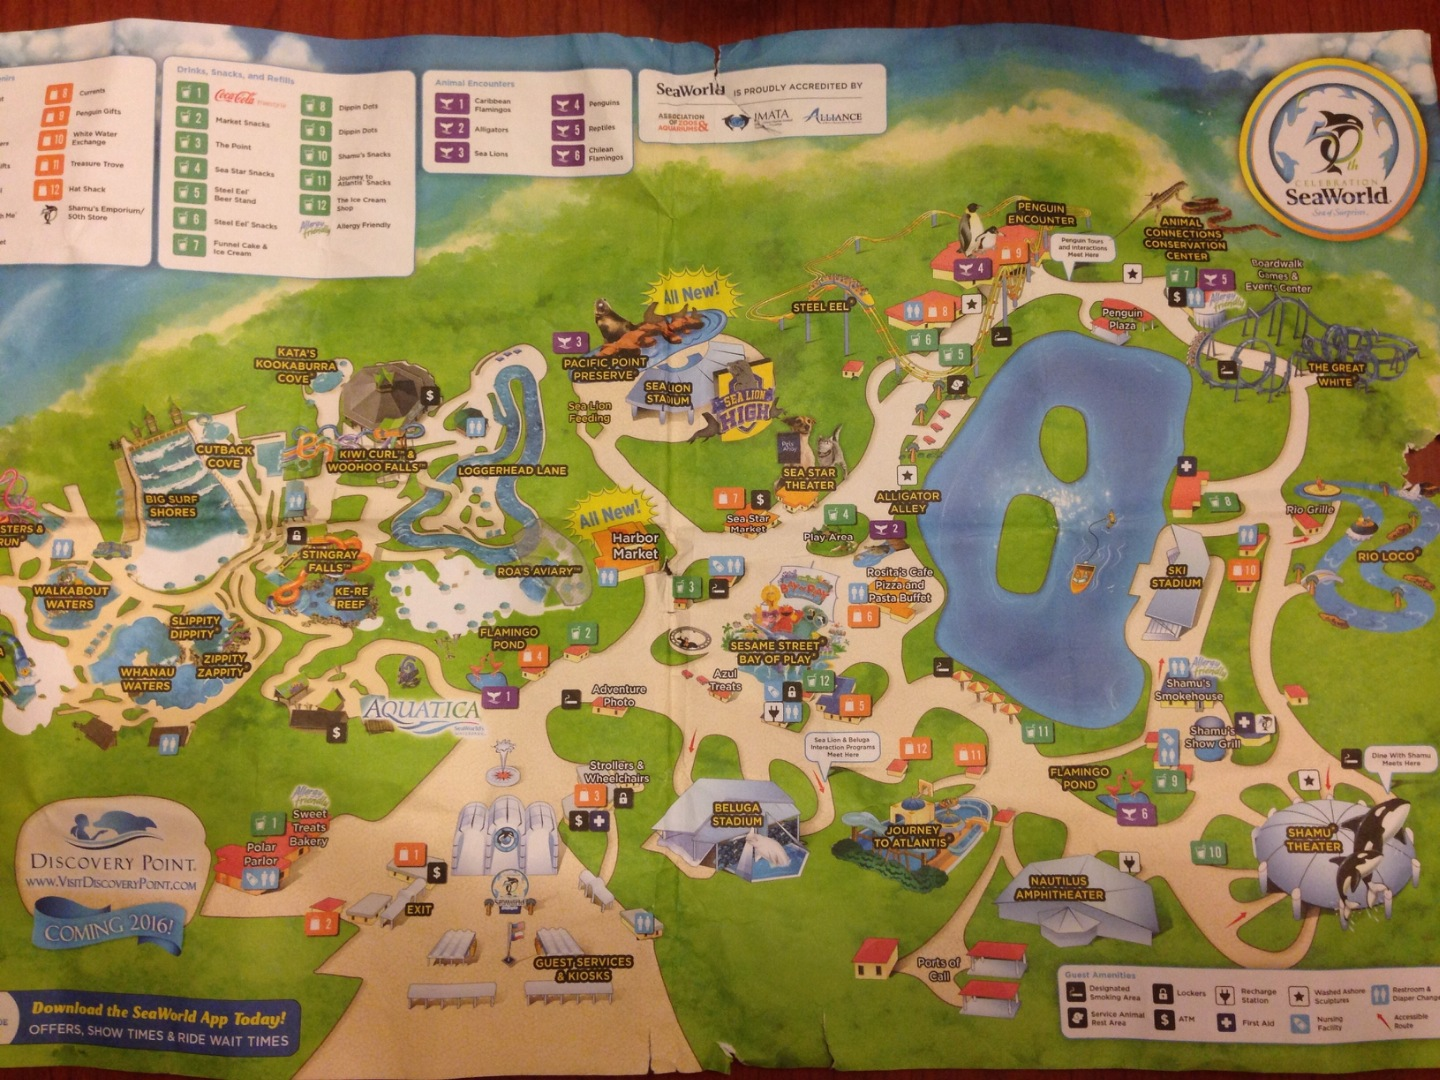 Seaworld san antonio texas united states travel experience family this map and gumiabroncs Choice Image